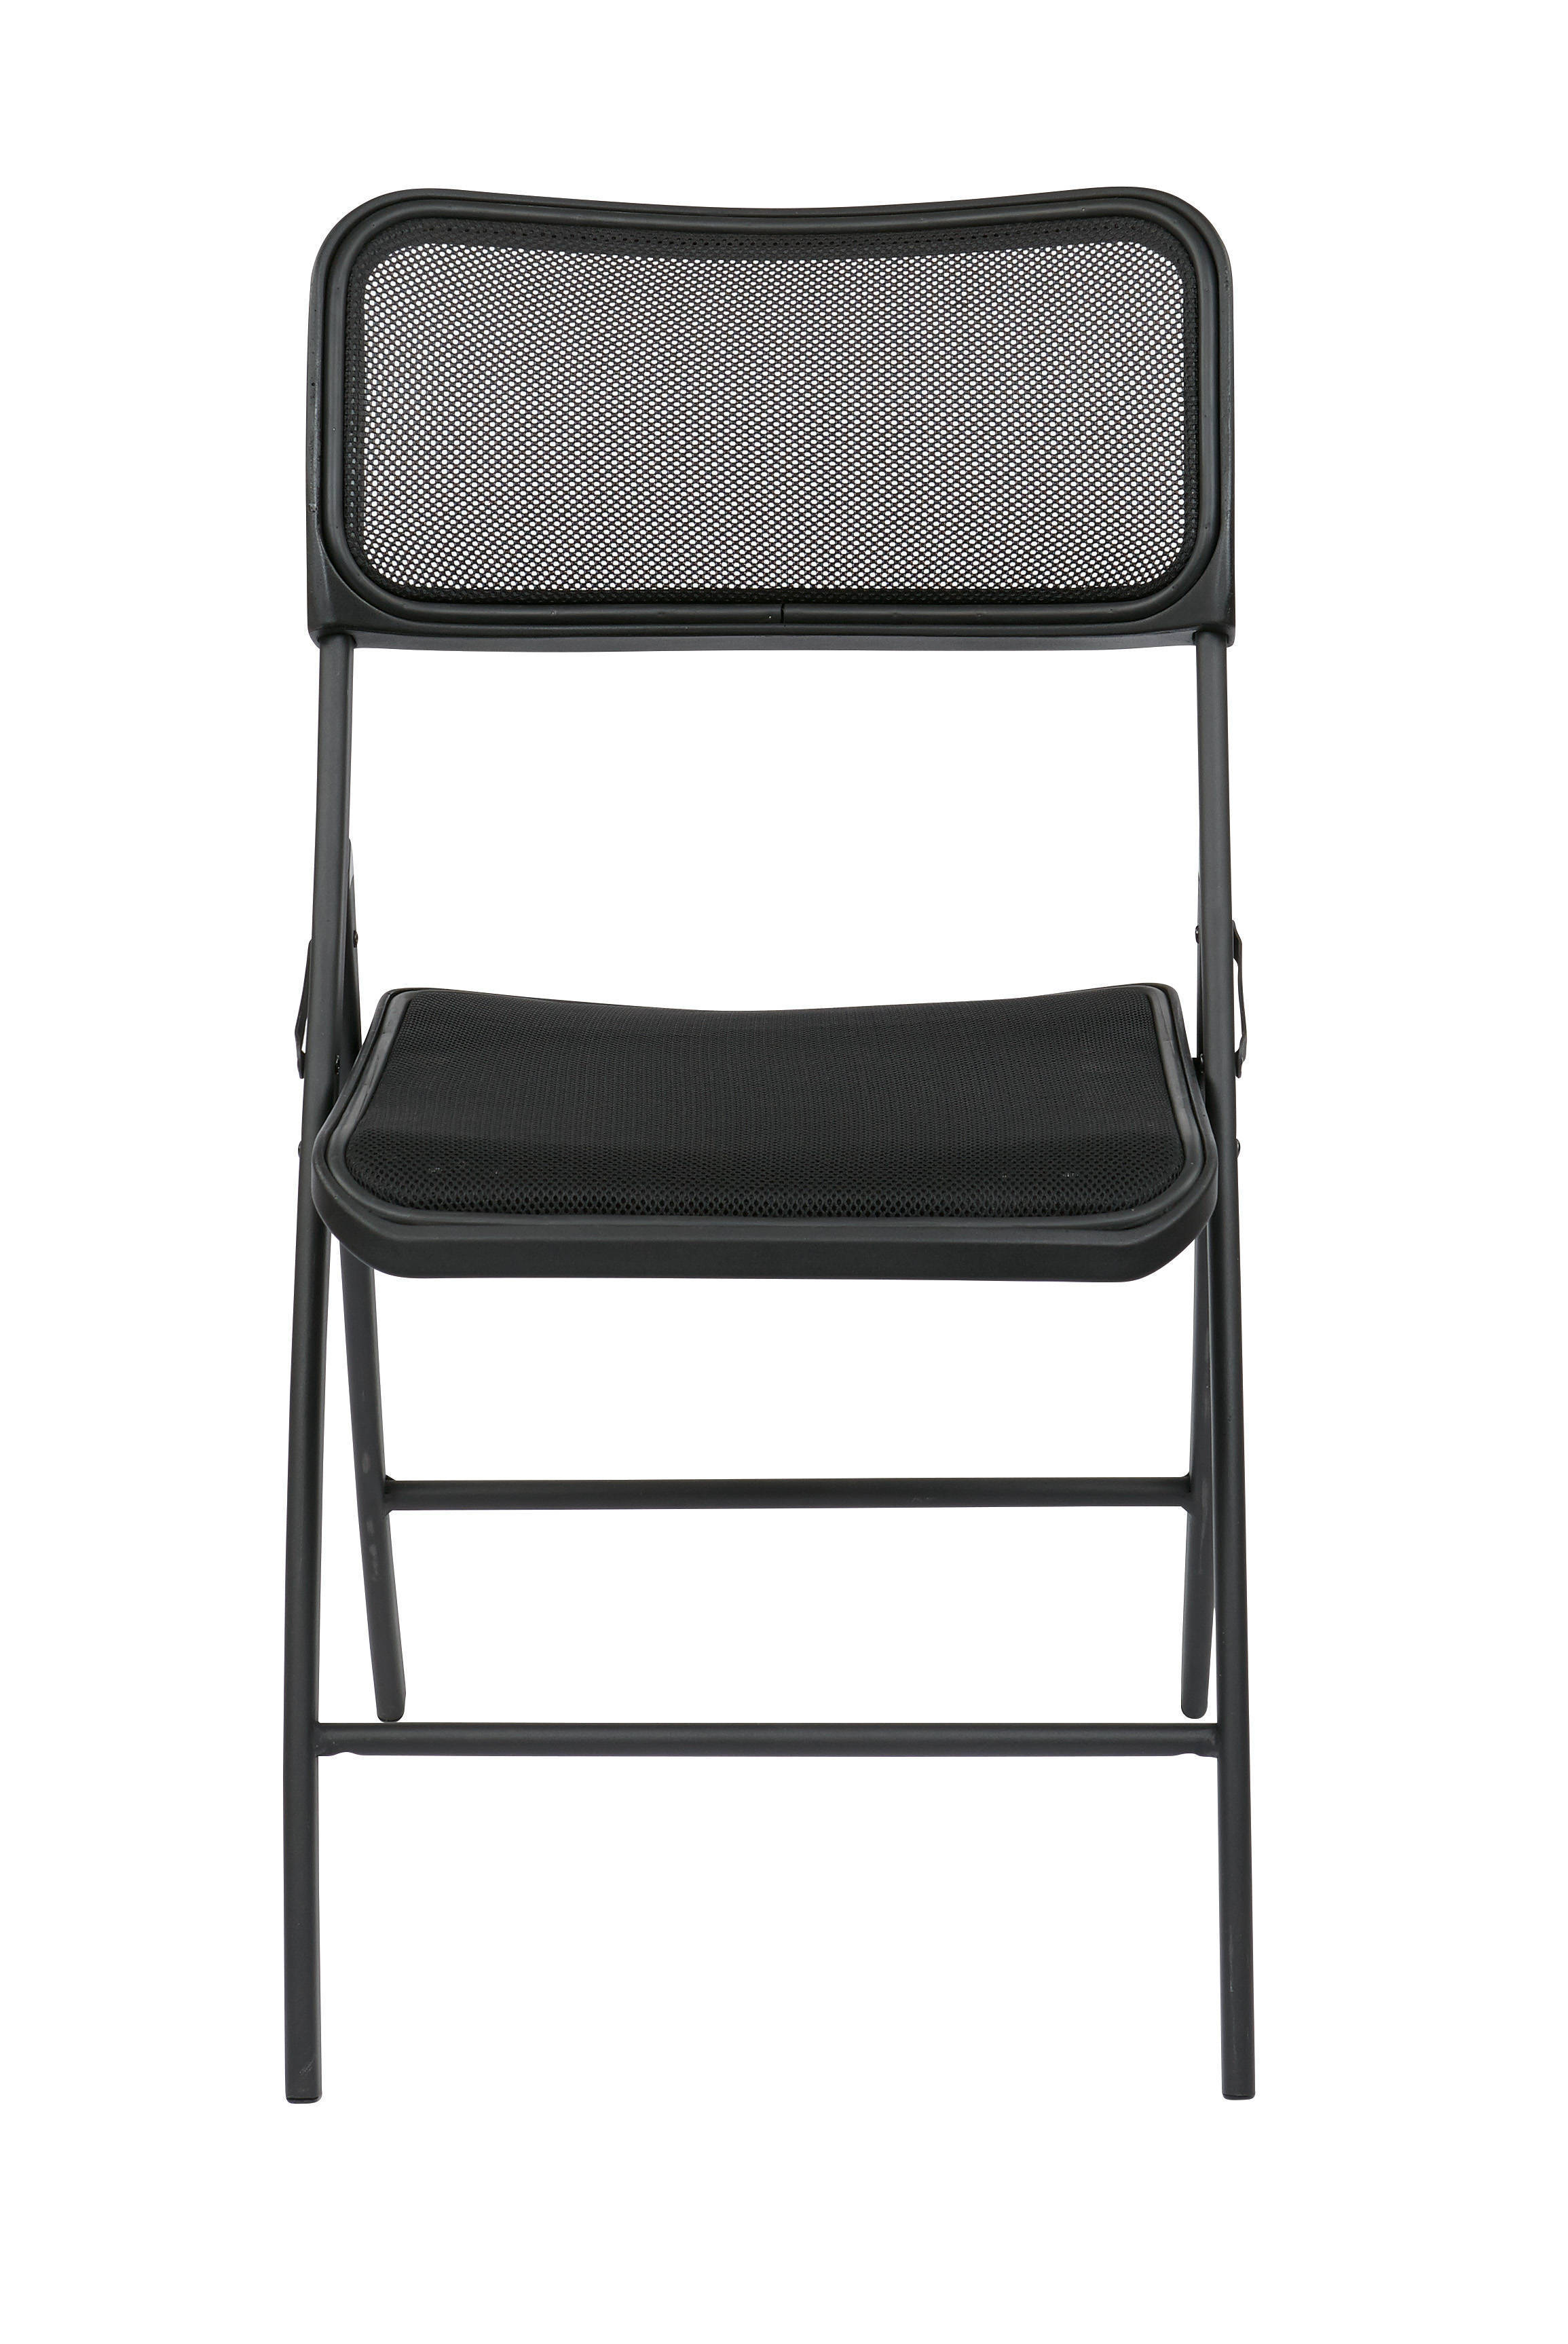 2 ff series black breathable screen seat back folding chairs the classy home. Black Bedroom Furniture Sets. Home Design Ideas